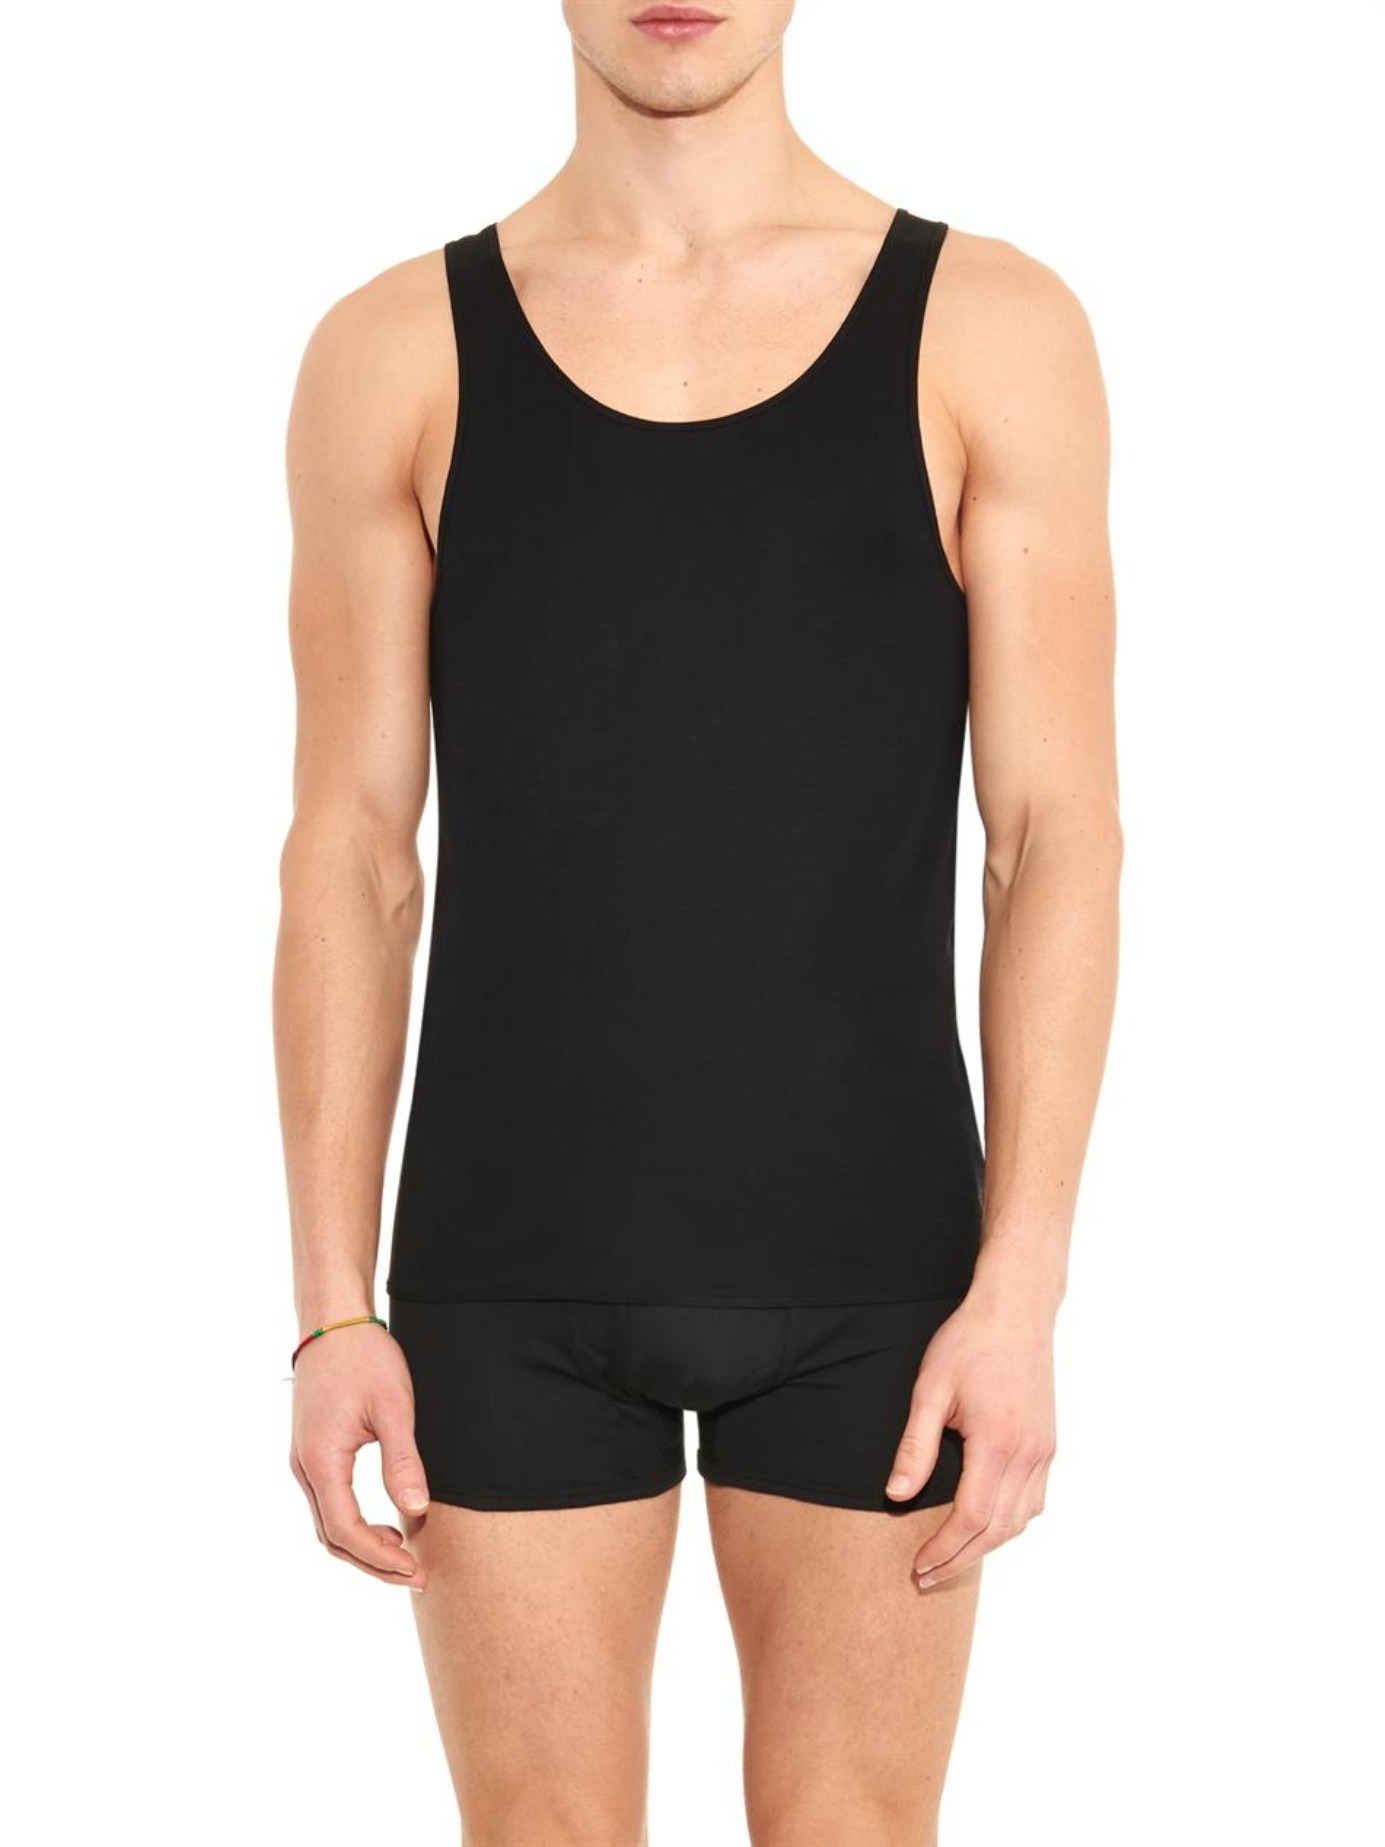 The white briefs Rye Cotton Tank Top in Black for Men